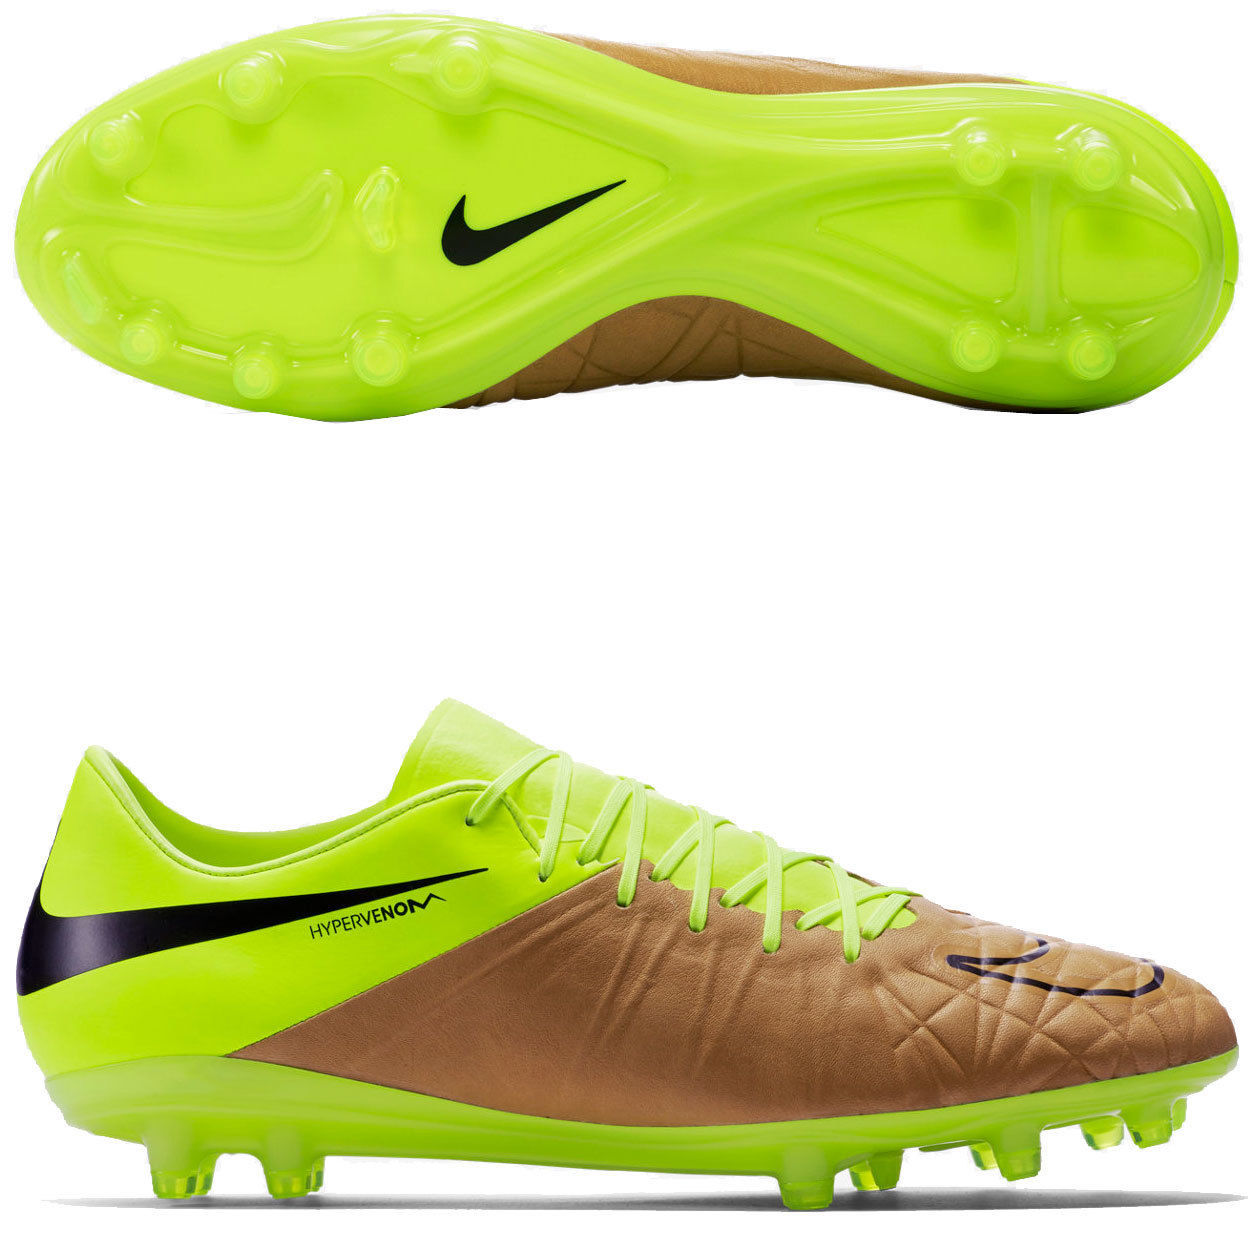 reputable site 263c8 a9701 Nike Hypervenom Phinish Fg Soccer Cleats and 50 similar items. 57